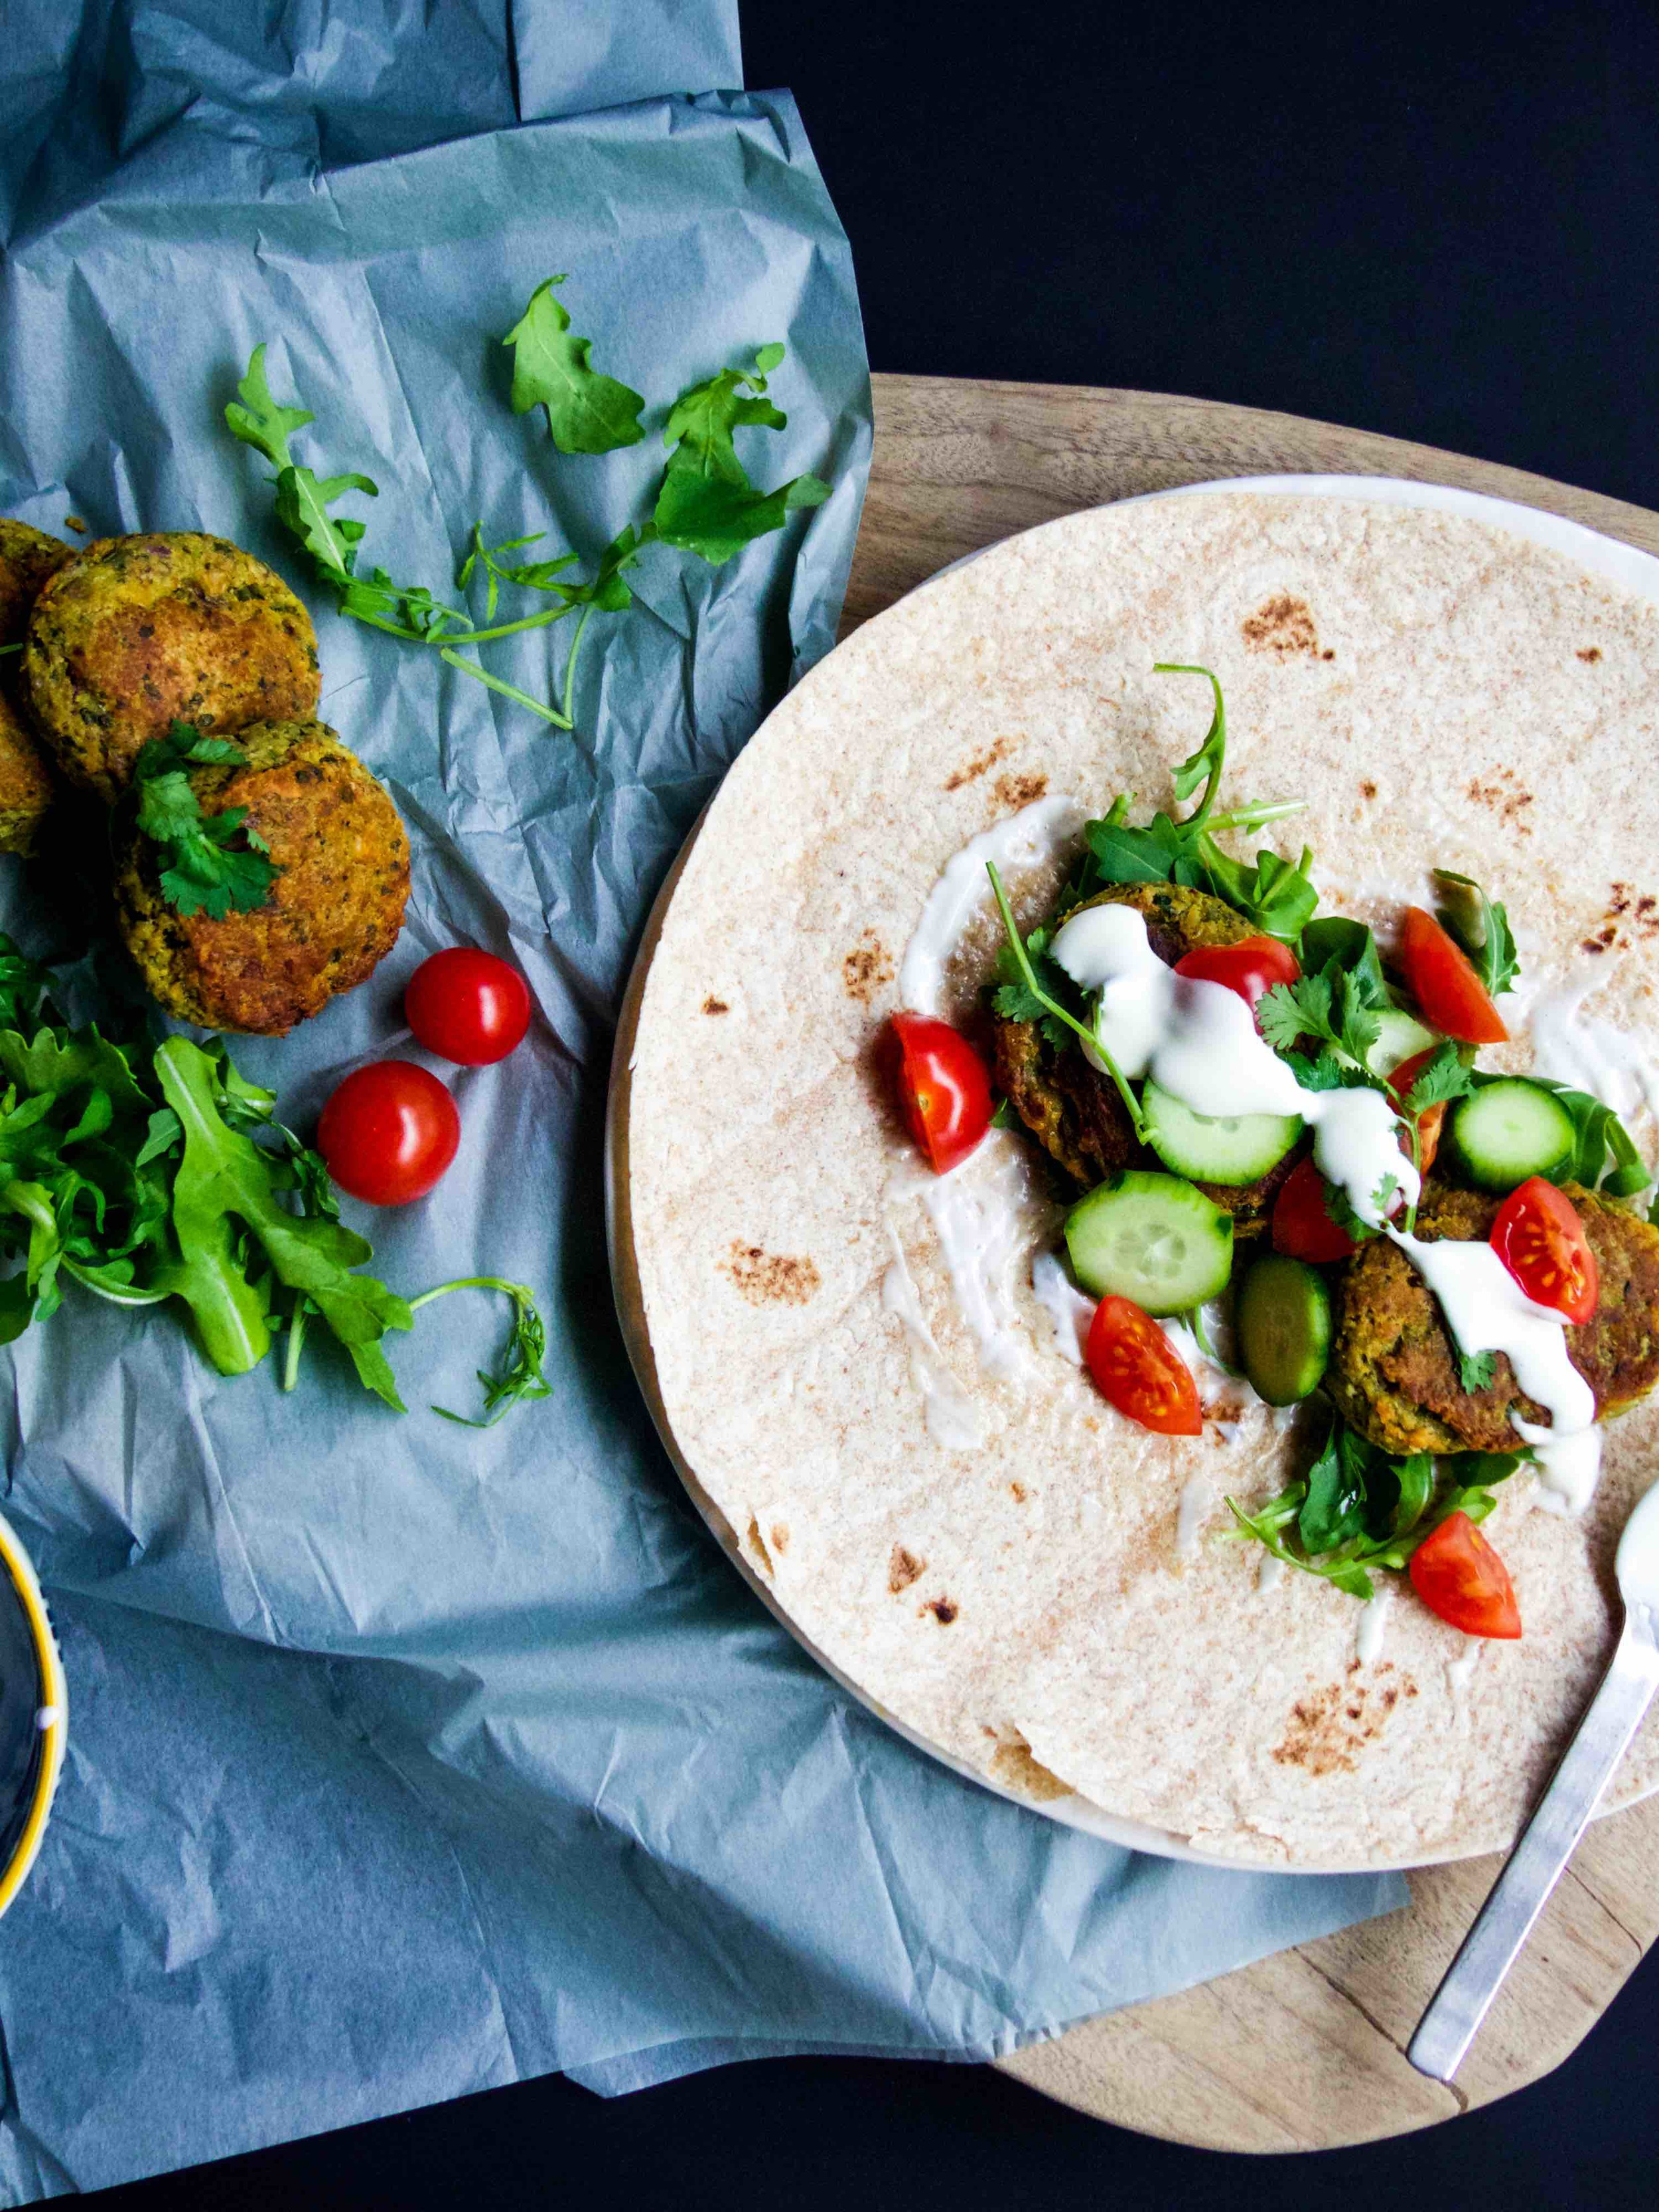 simple oven-baked falafel with tortilla wrap